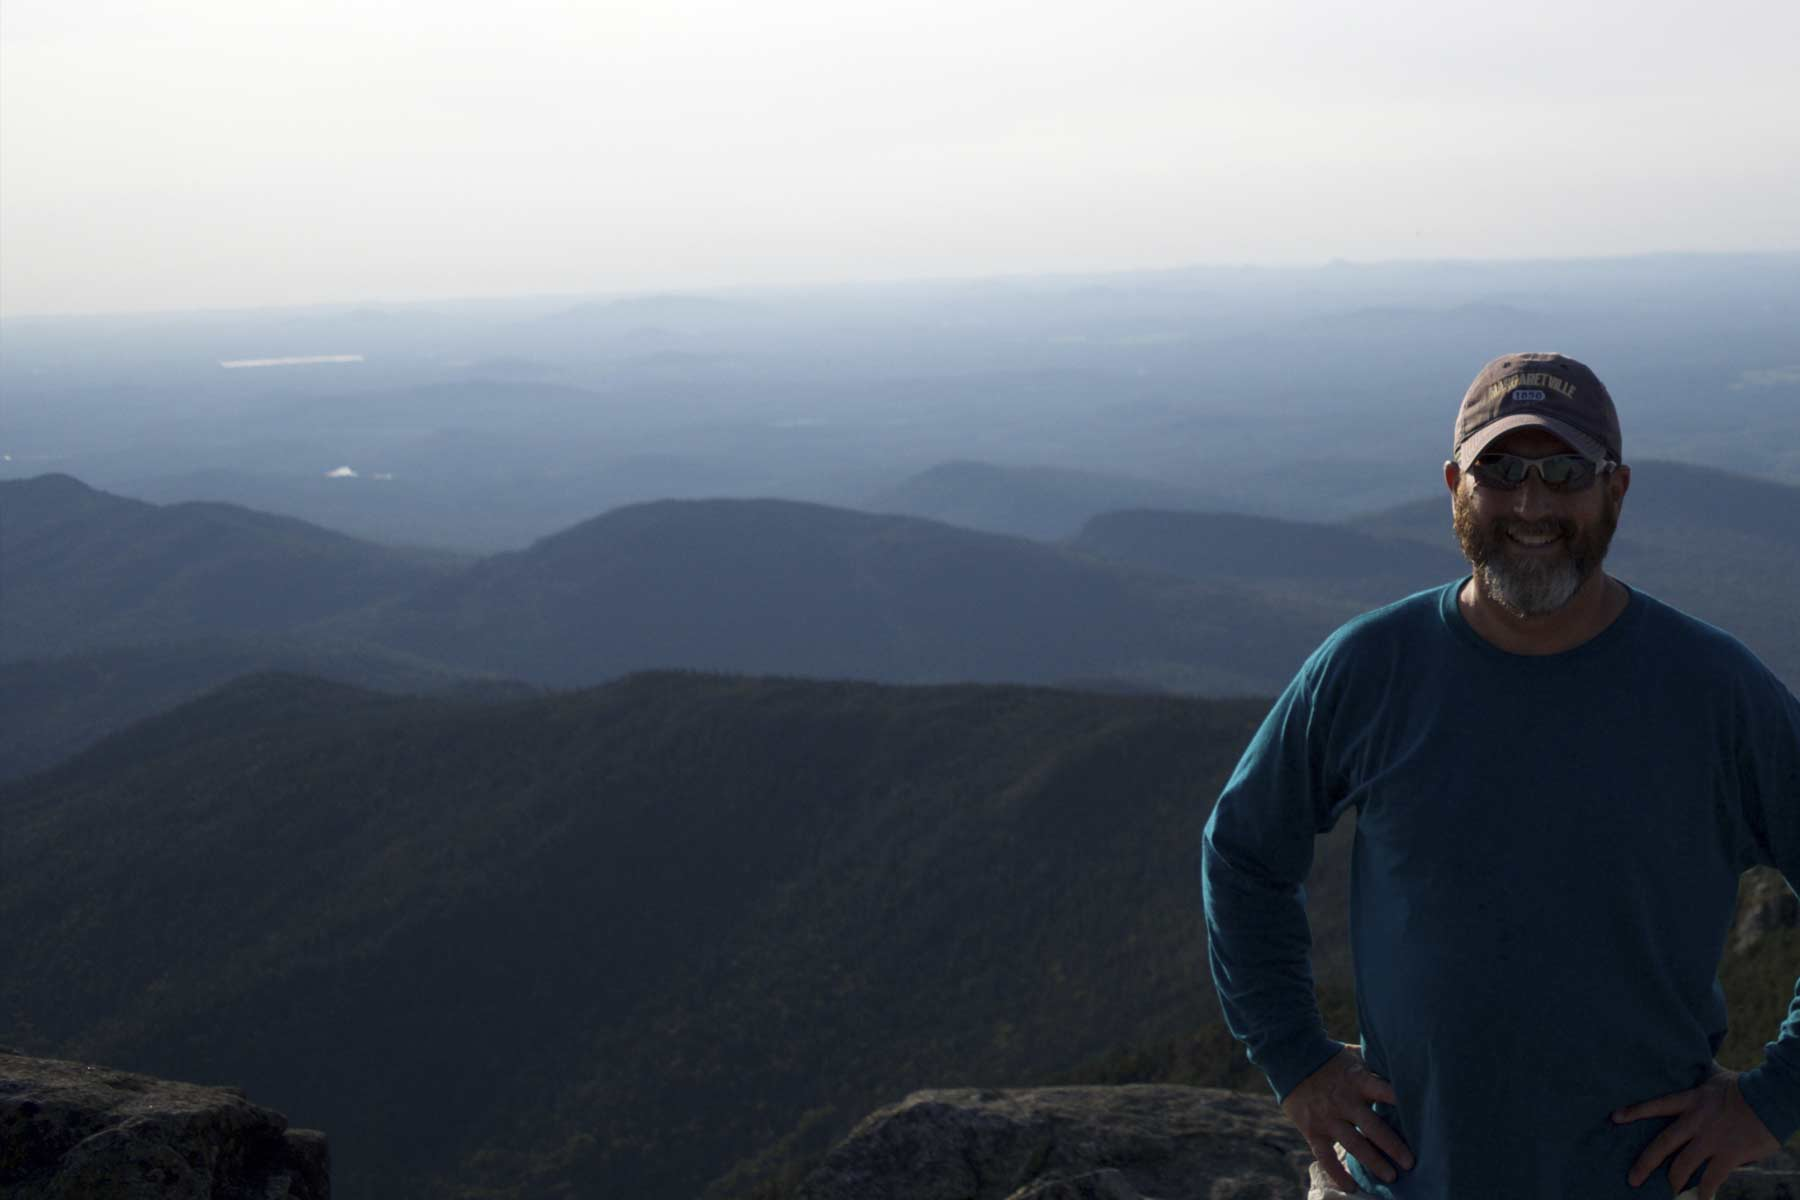 Atop Whiteface Summit